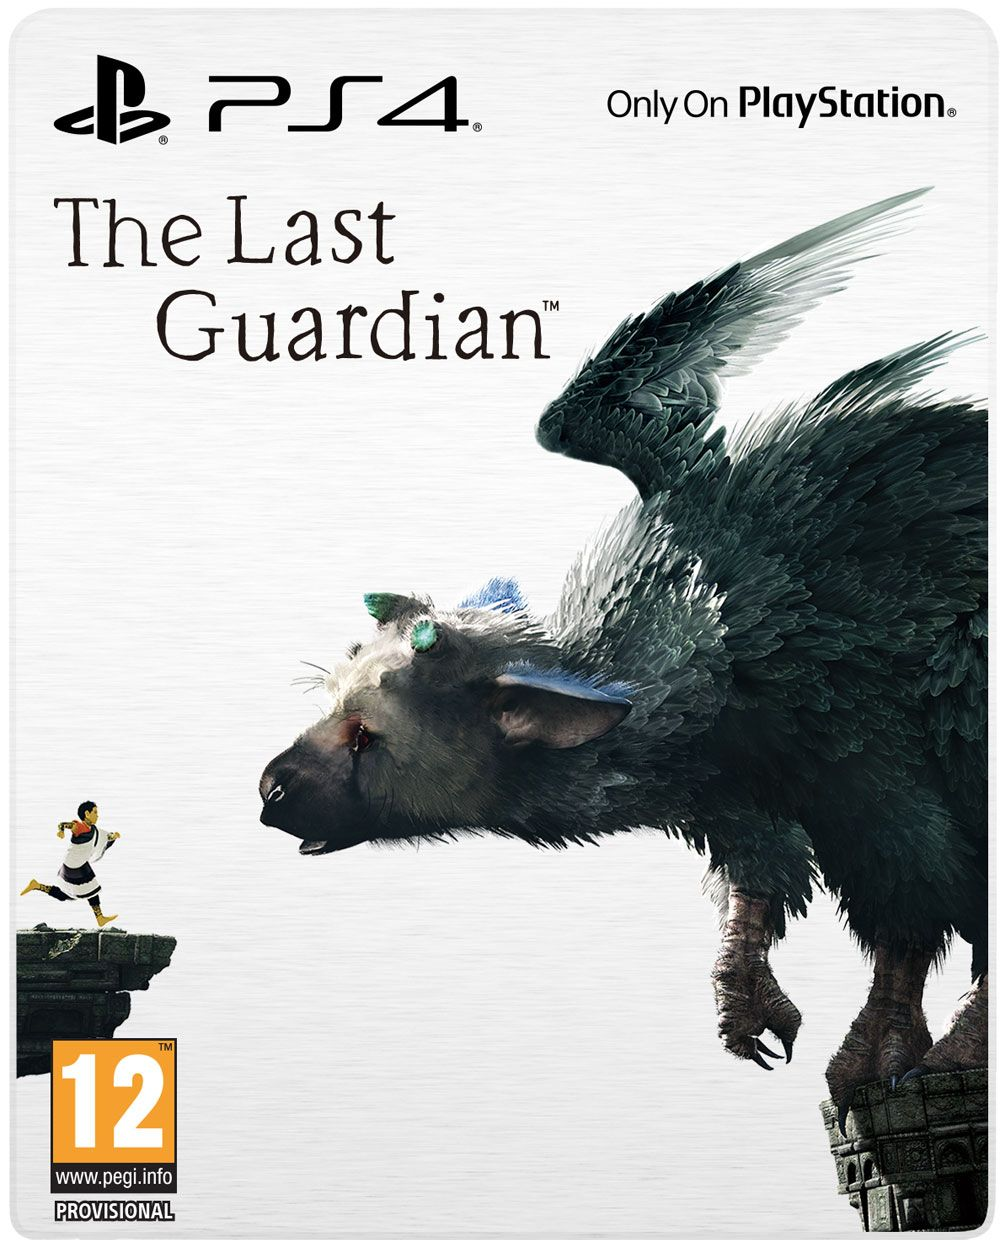 The Last Guardian Limited Edition (PS4) - 1